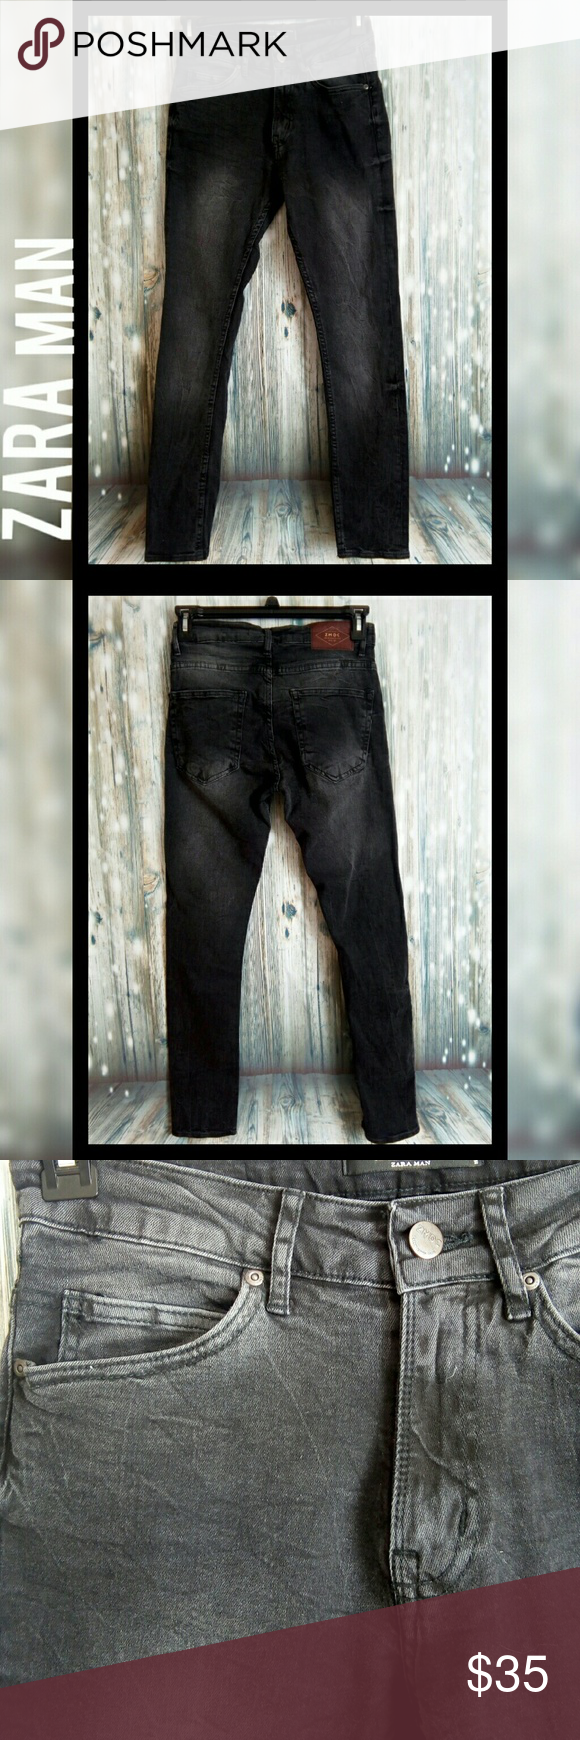 1d2e2617 Zara man denim collection black skinny jeans Zara man denim collection  Black washed skinny jeans *Like new condition Size 30 Waist 14.5